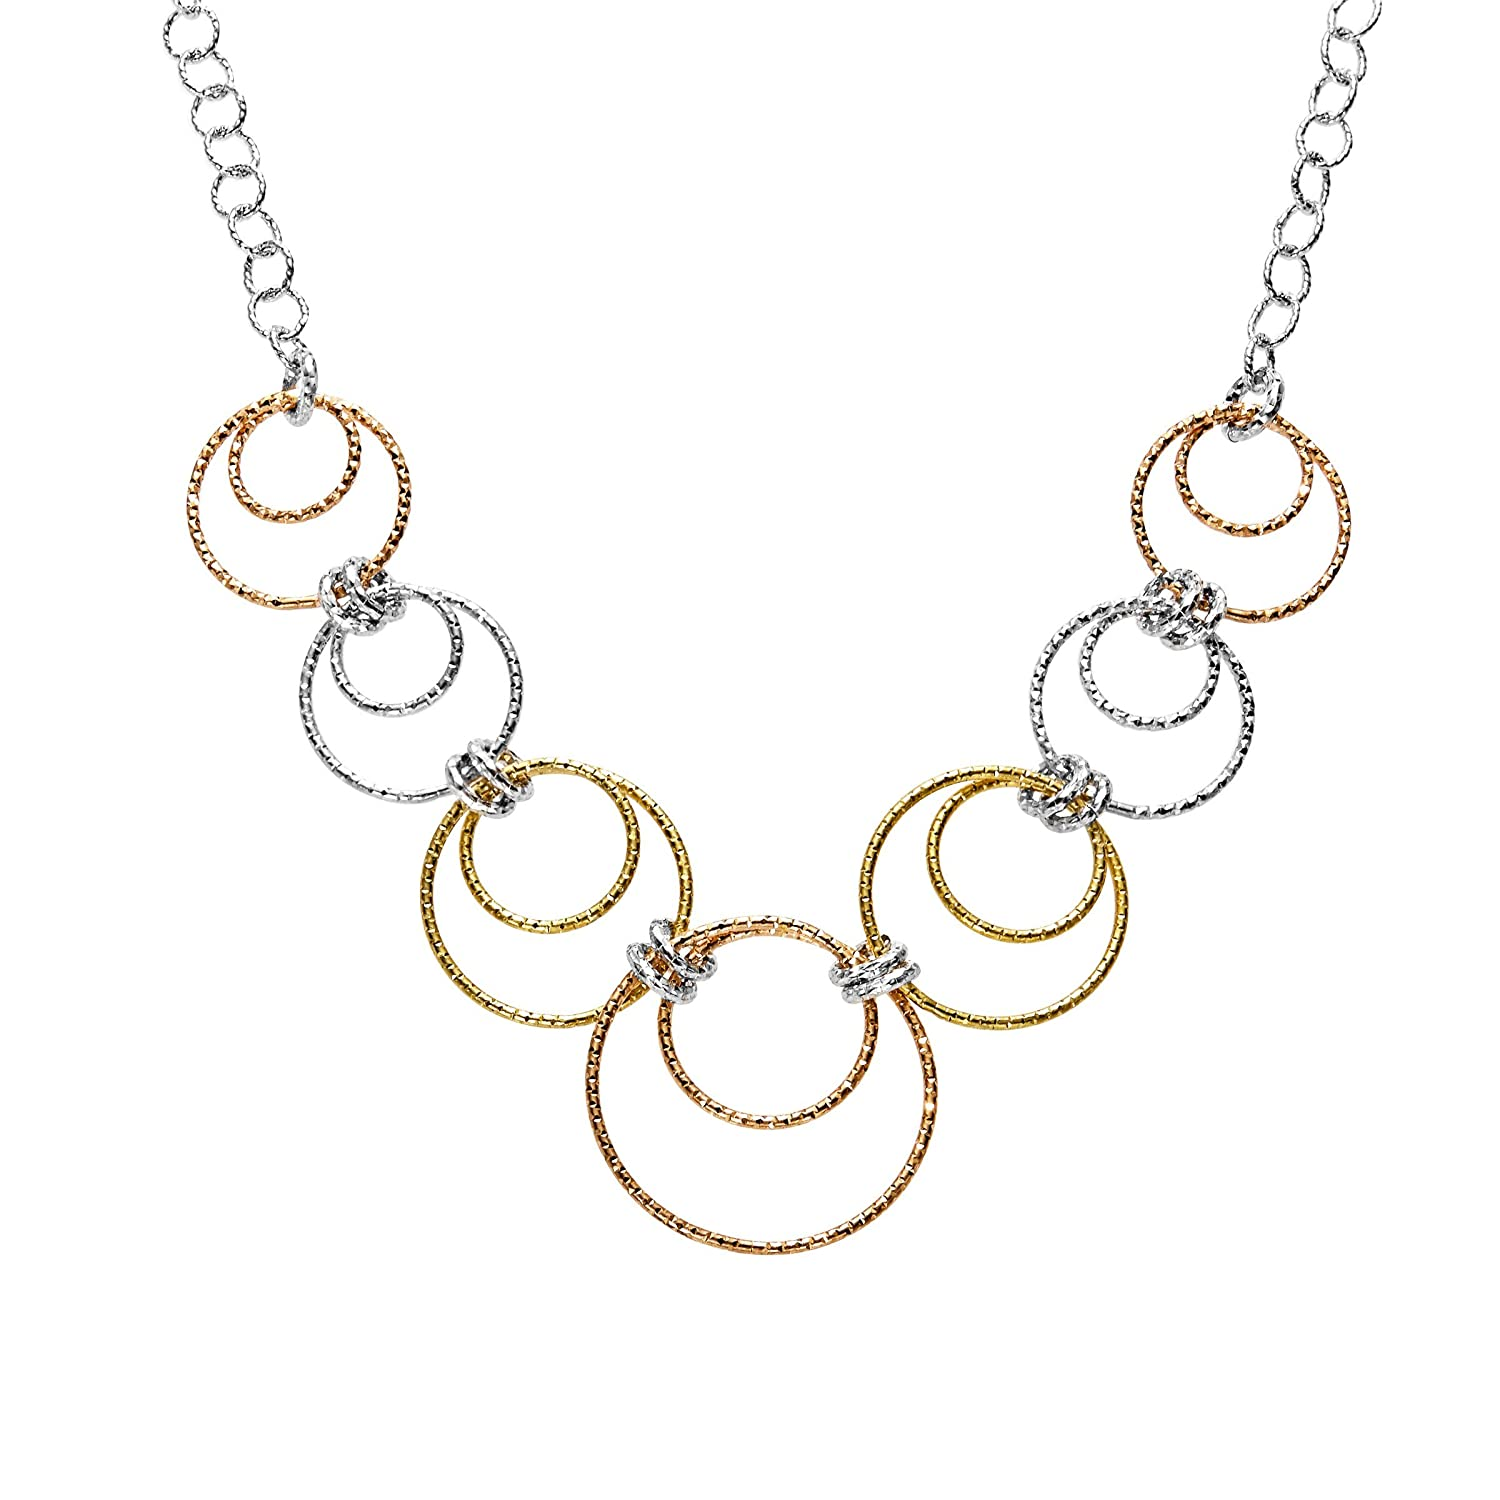 Circle Necklace in 18K Two-Tone Gold-Plated Sterling Silver